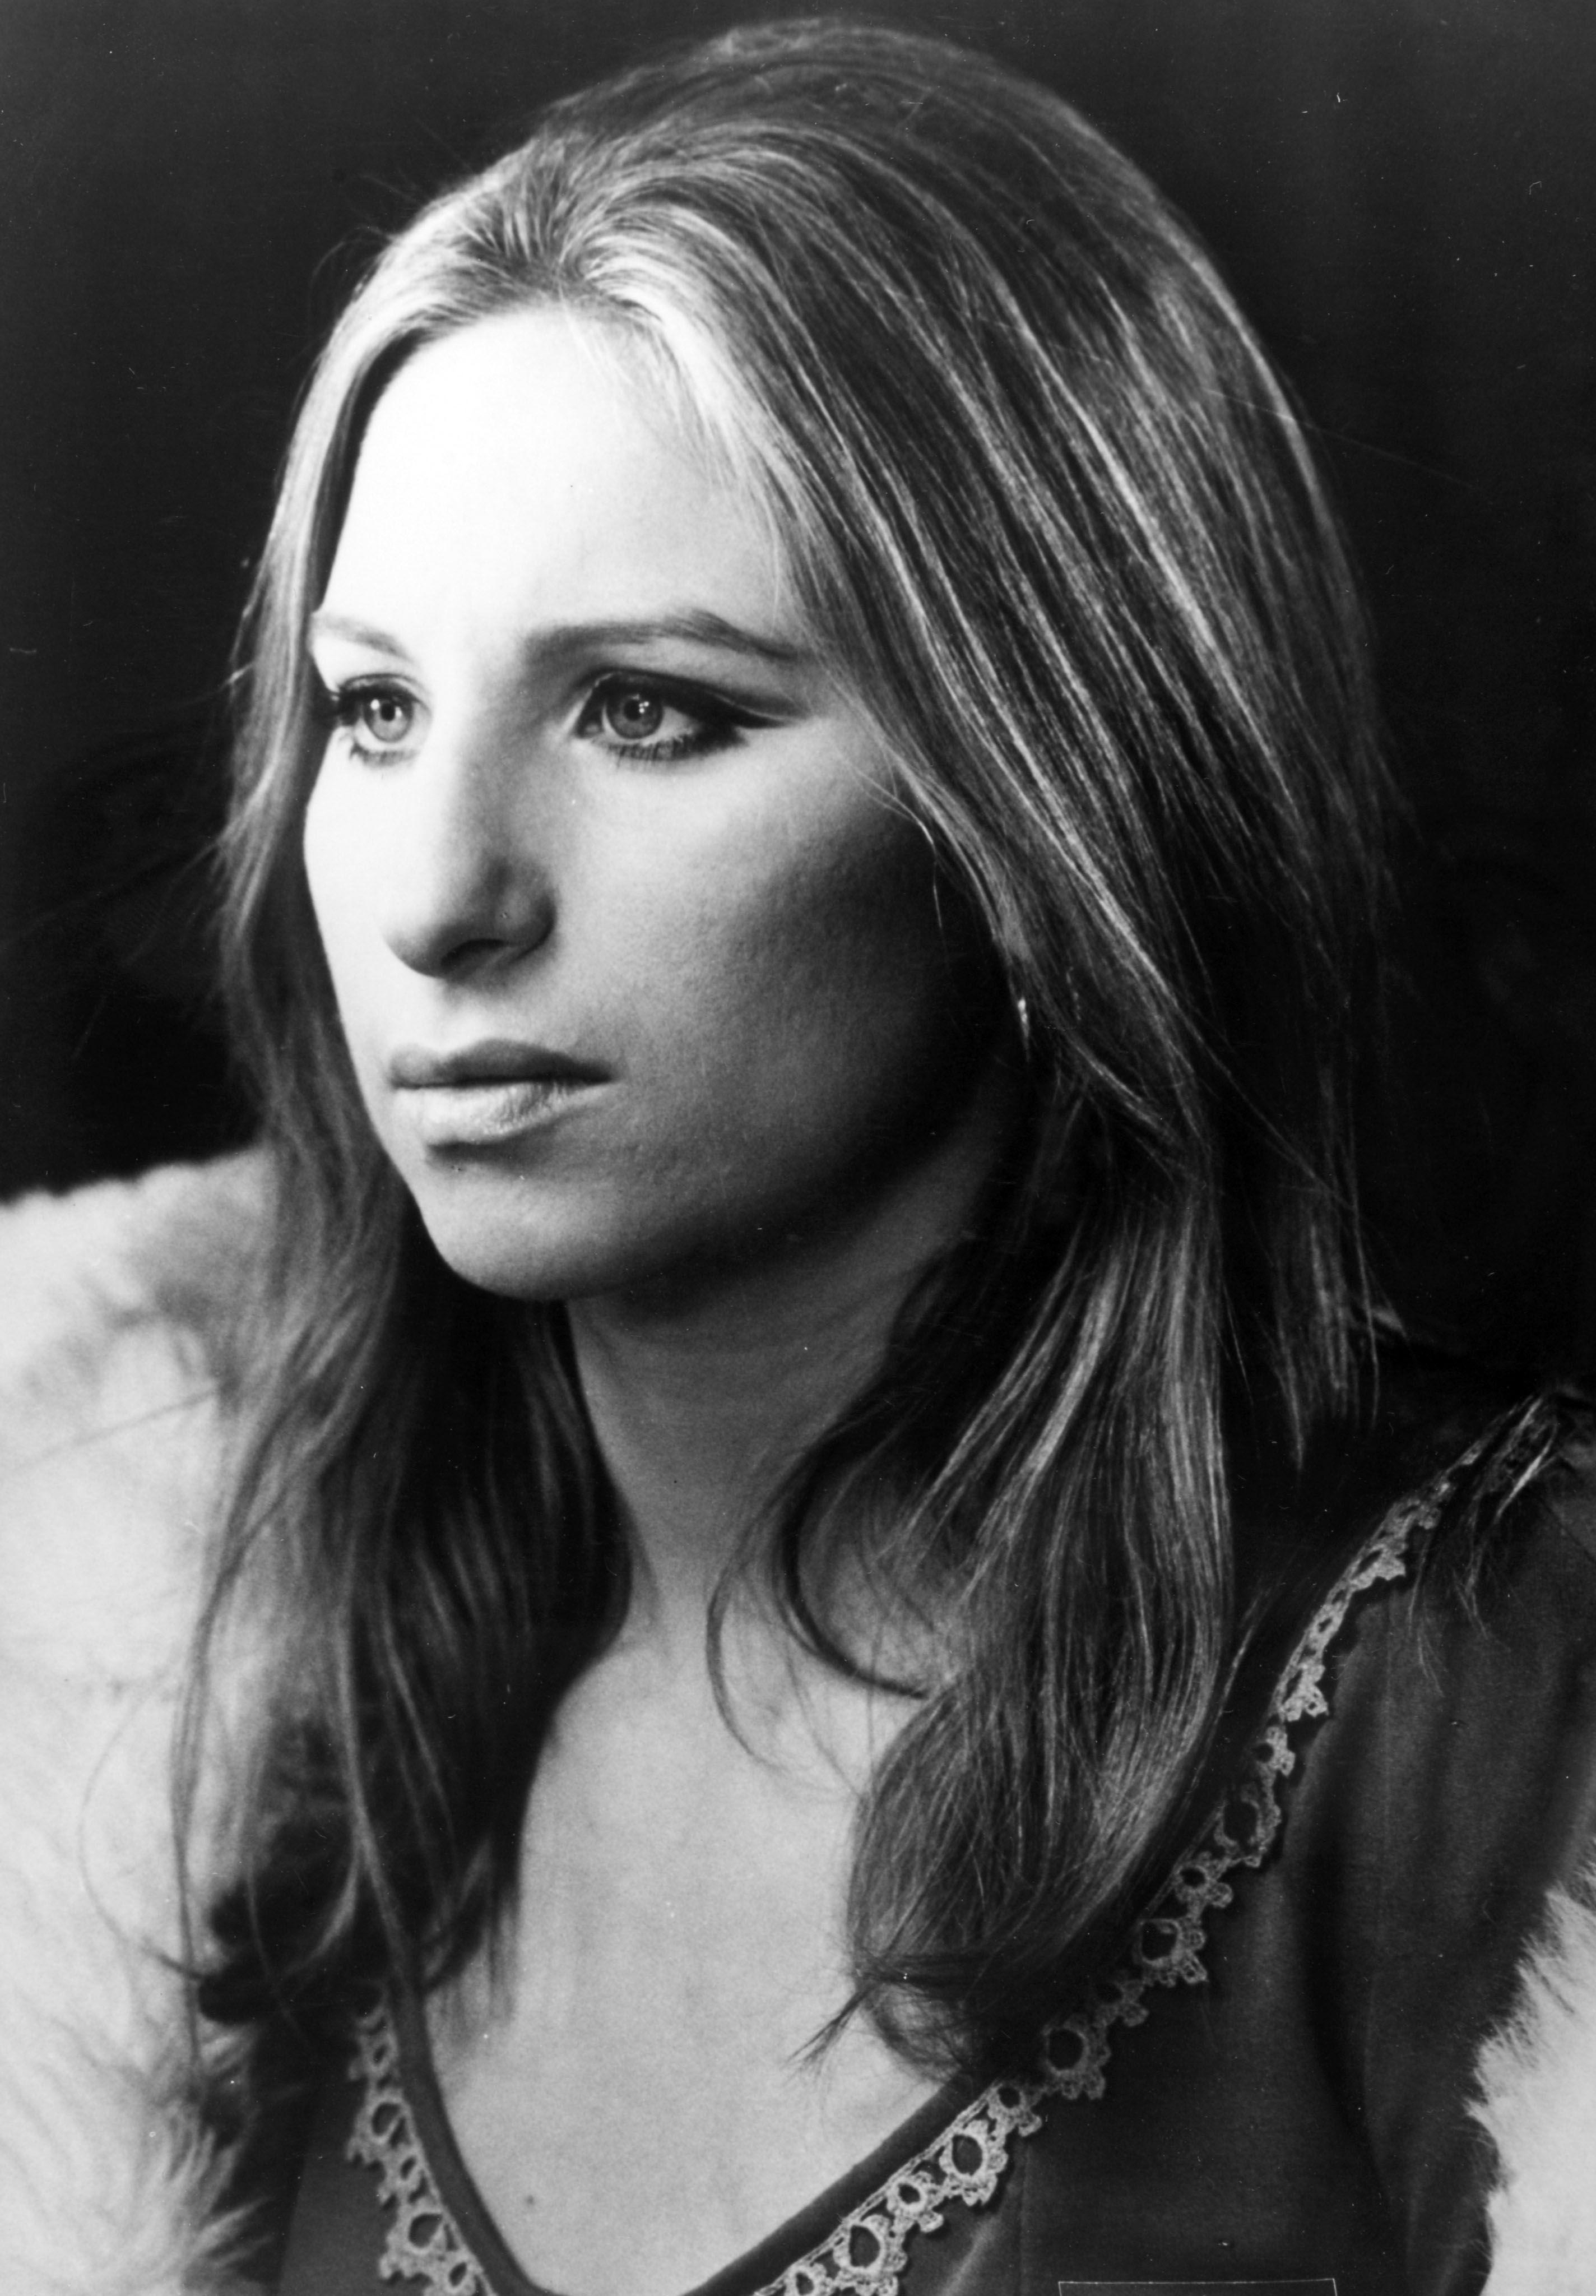 214x317px Top HDQ Barbra Streisand images 42 #1453092106